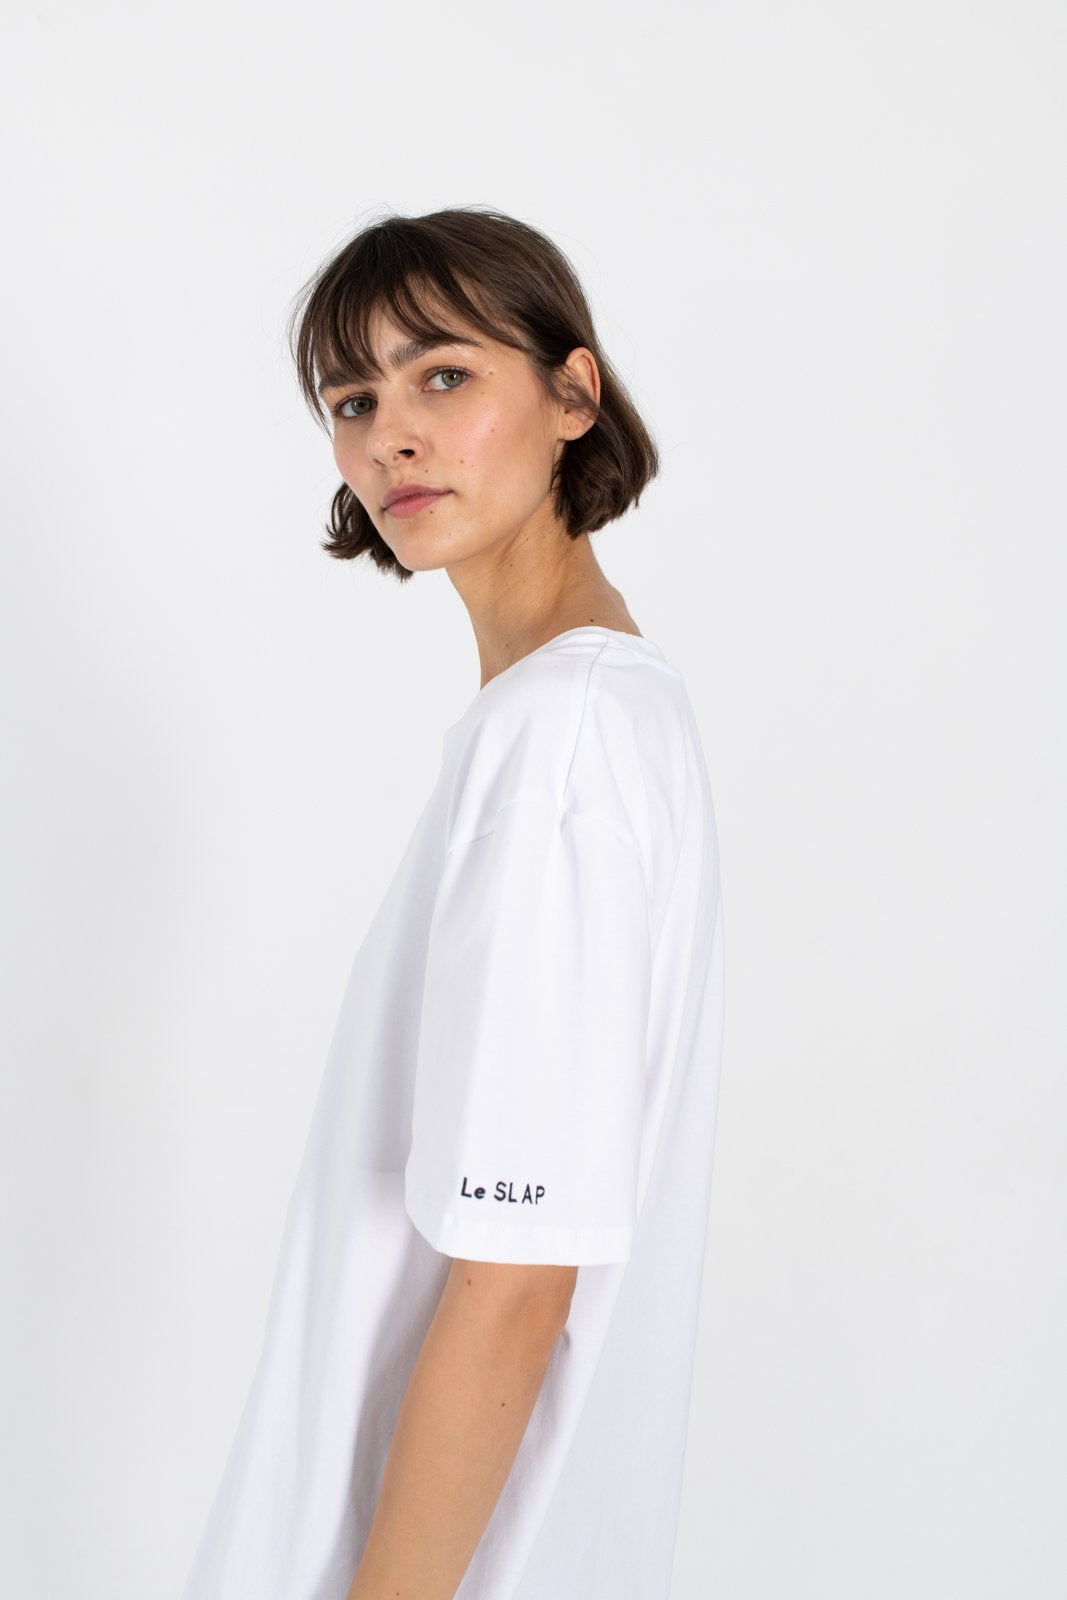 Le SLAP white oversize unisex cotton logo t-shirt